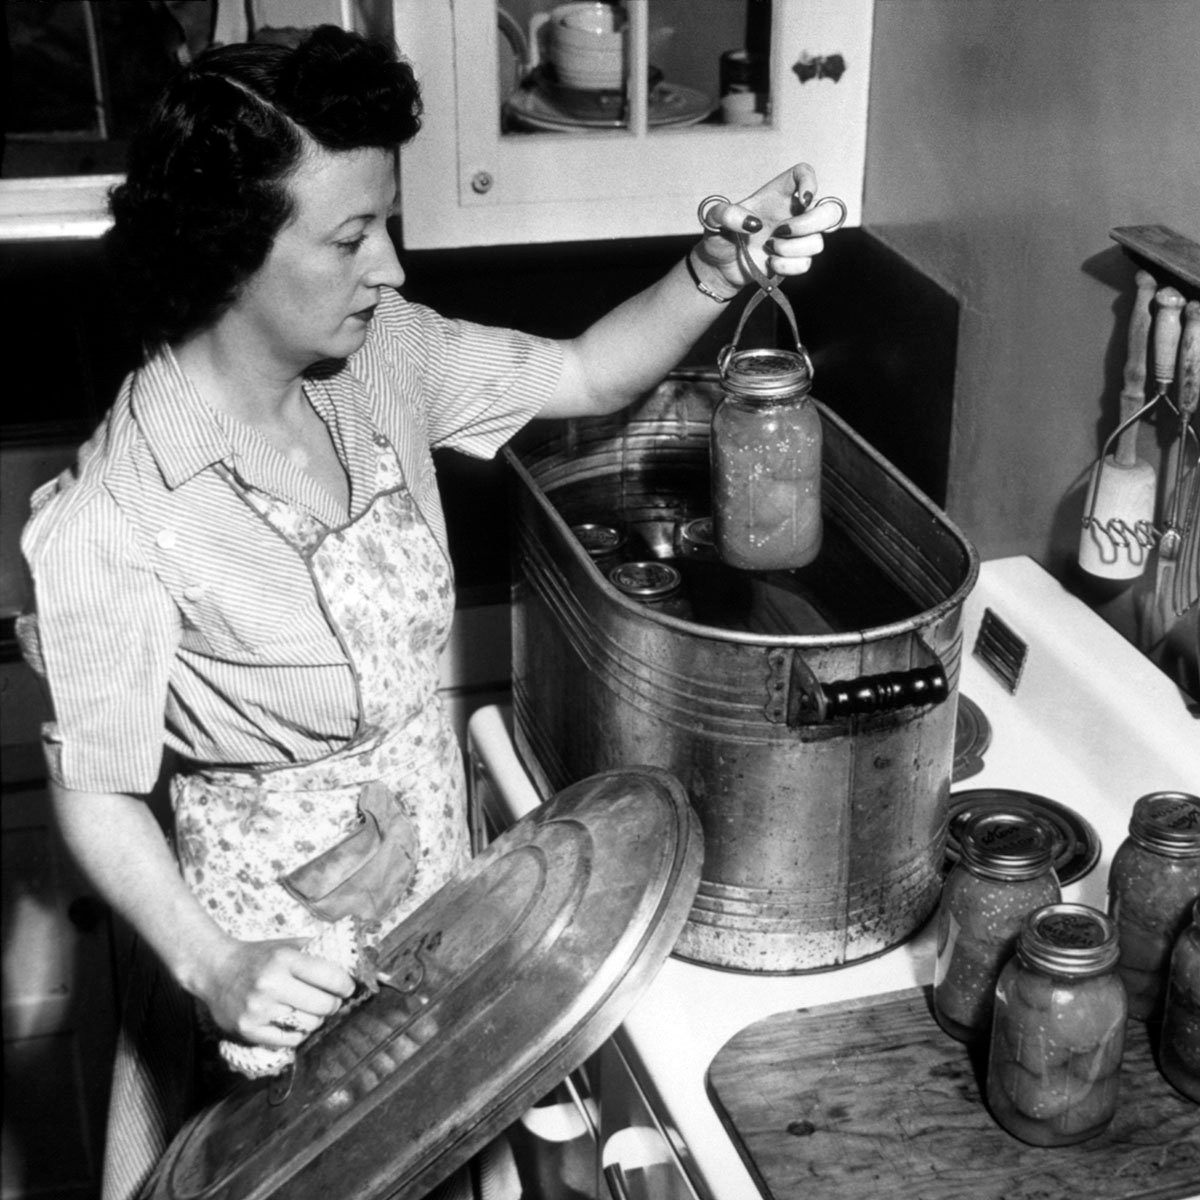 Housewife Preserving Tomatoes from Her Victory Garden, U.S. Dept. of Agriculture Photo, 1944. (Photo by: Universal History Archive/Universal Images Group via Getty Images)